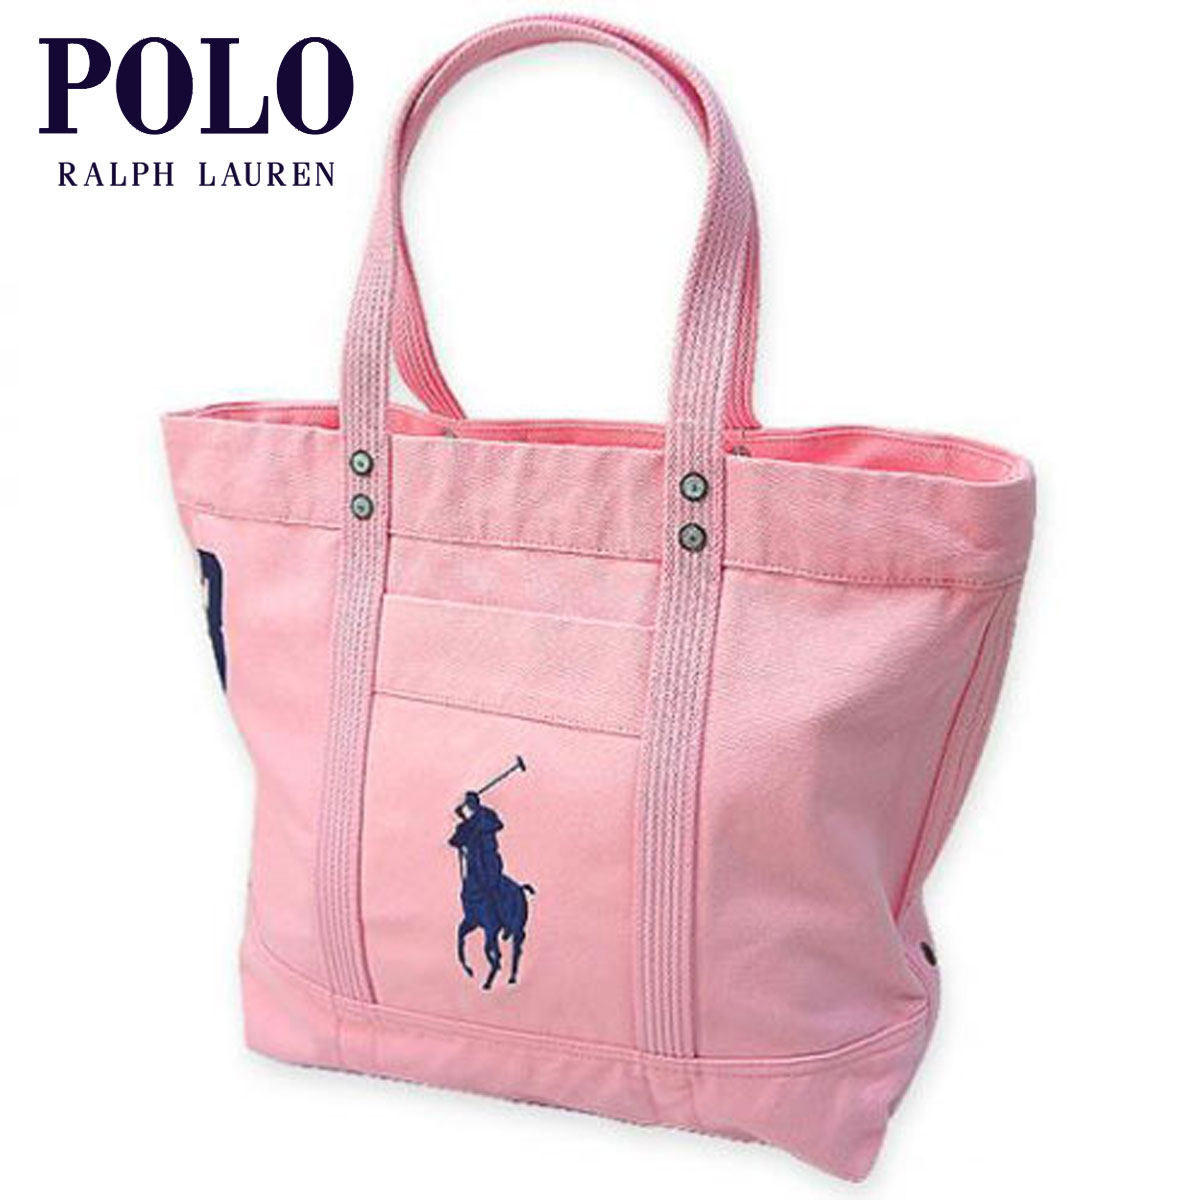 Ralph Lauren Big Pony Black Canvas Handbag